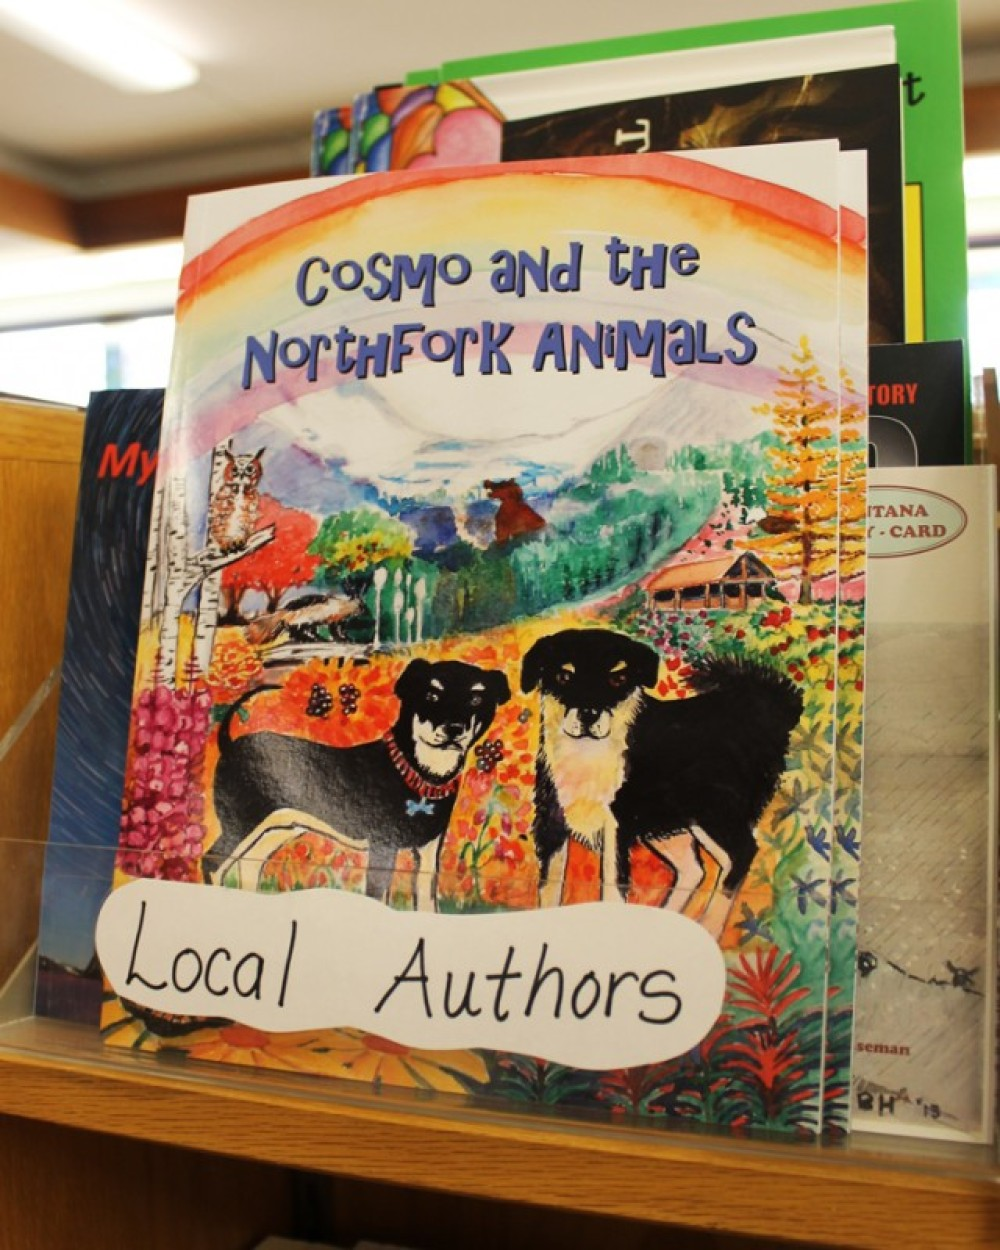 If you love getting lost in a good read, make sure Bookworks is on your list. Local authors range from Children's picture books, to local history to autobiographical tales.